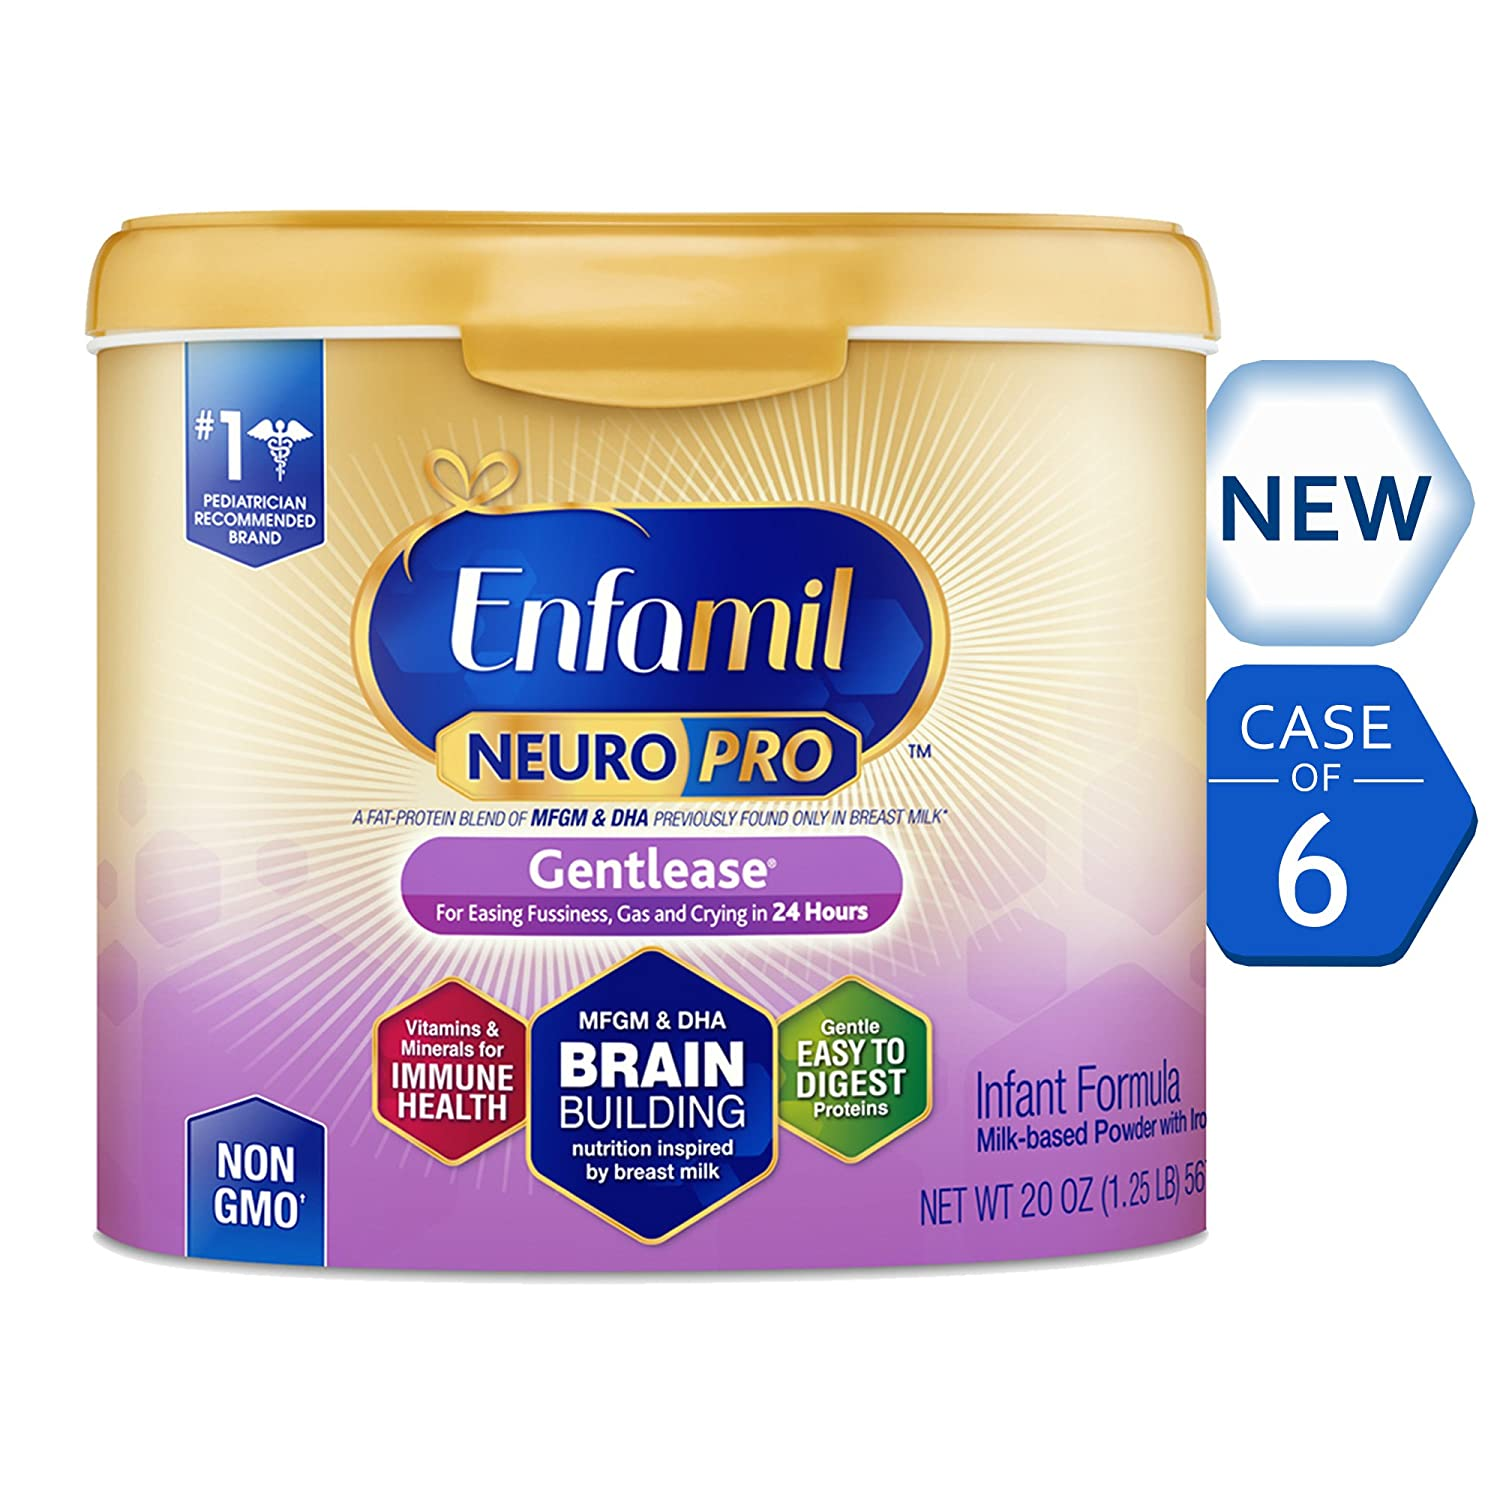 Enfamil NeuroPro Gentlease Infant Formula - Clinically Proven to reduce fussiness, gas, crying in 24 hours - Brain Building Nutrition Inspired by breast milk - Reusable Powder Tub, 20 oz Mead Johnson & Company B07BXH5F3X